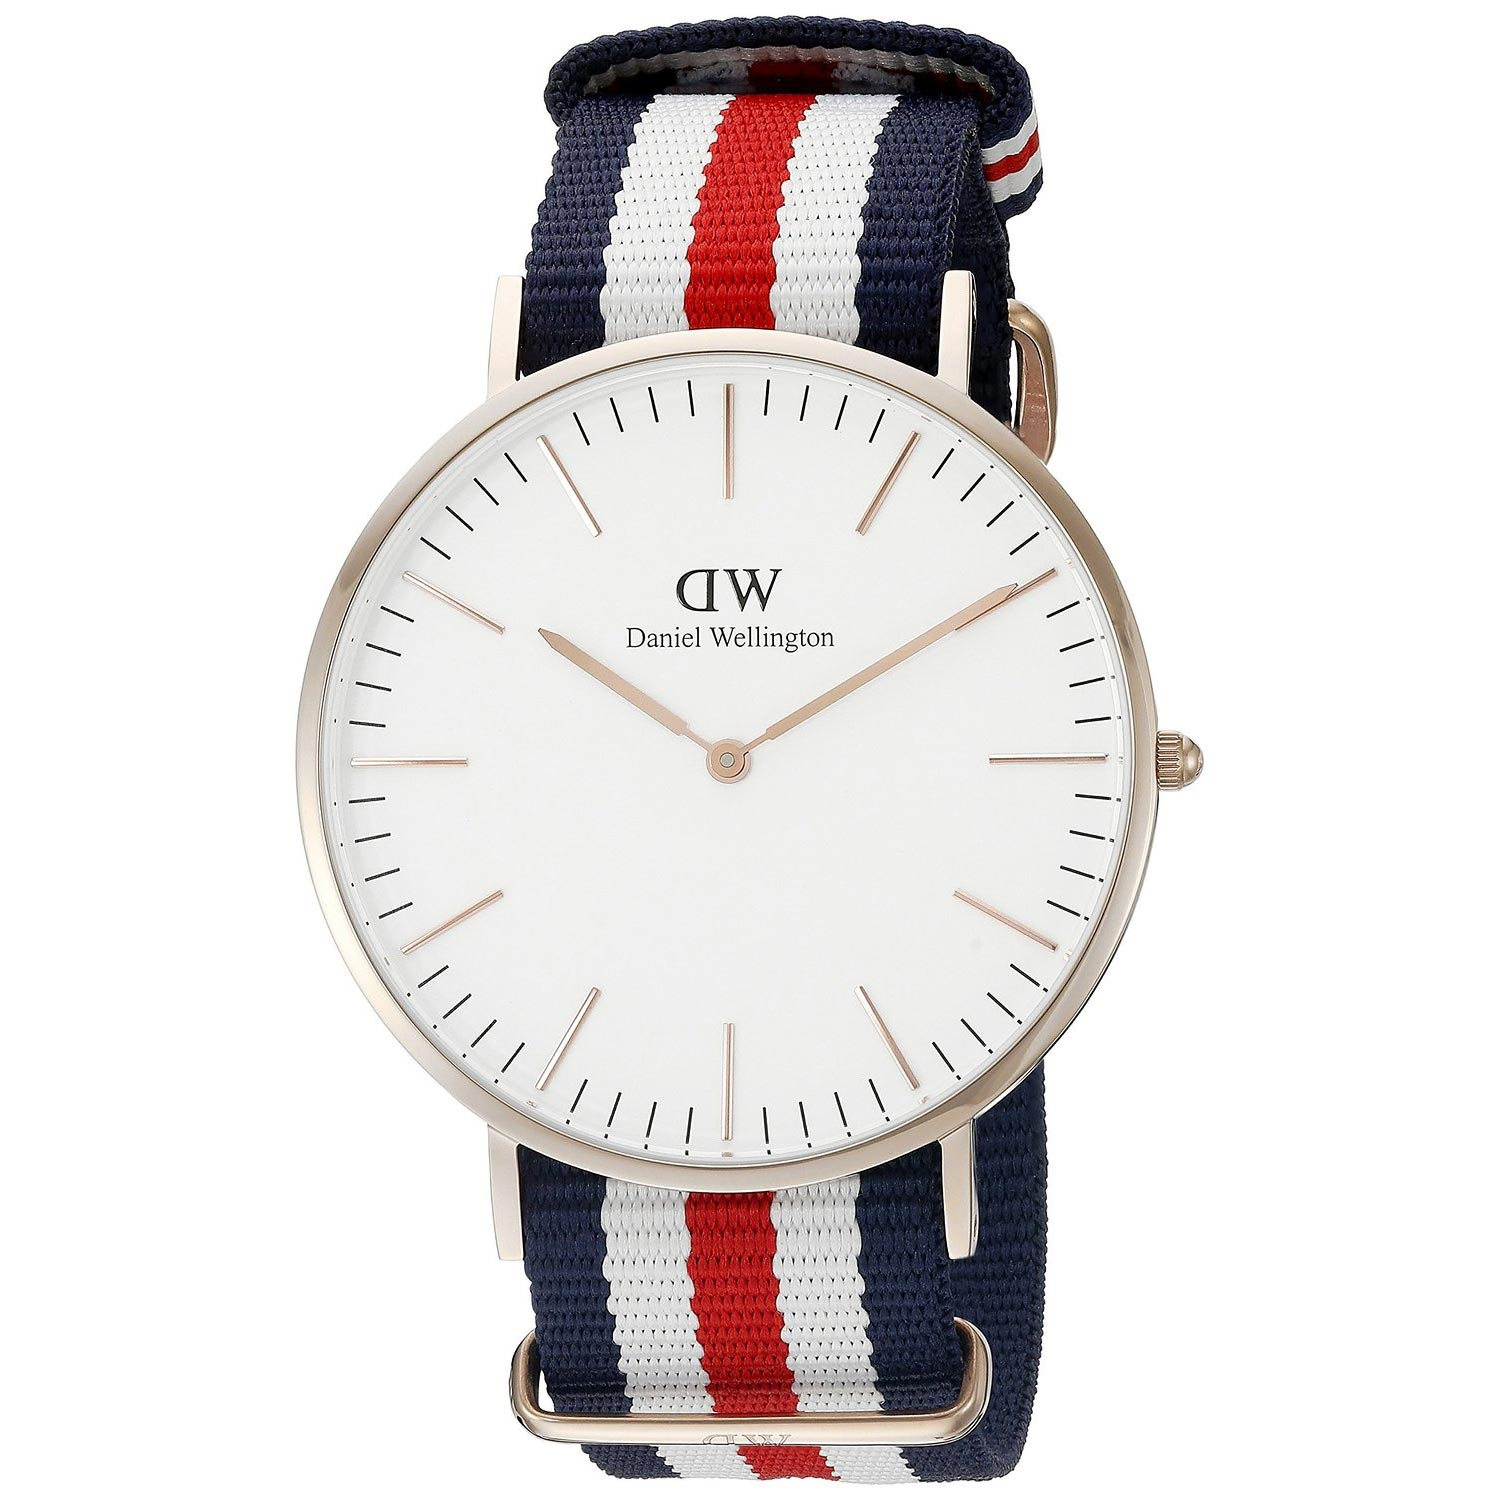 daniel wellington herrenuhr mit nato textilarmband. Black Bedroom Furniture Sets. Home Design Ideas